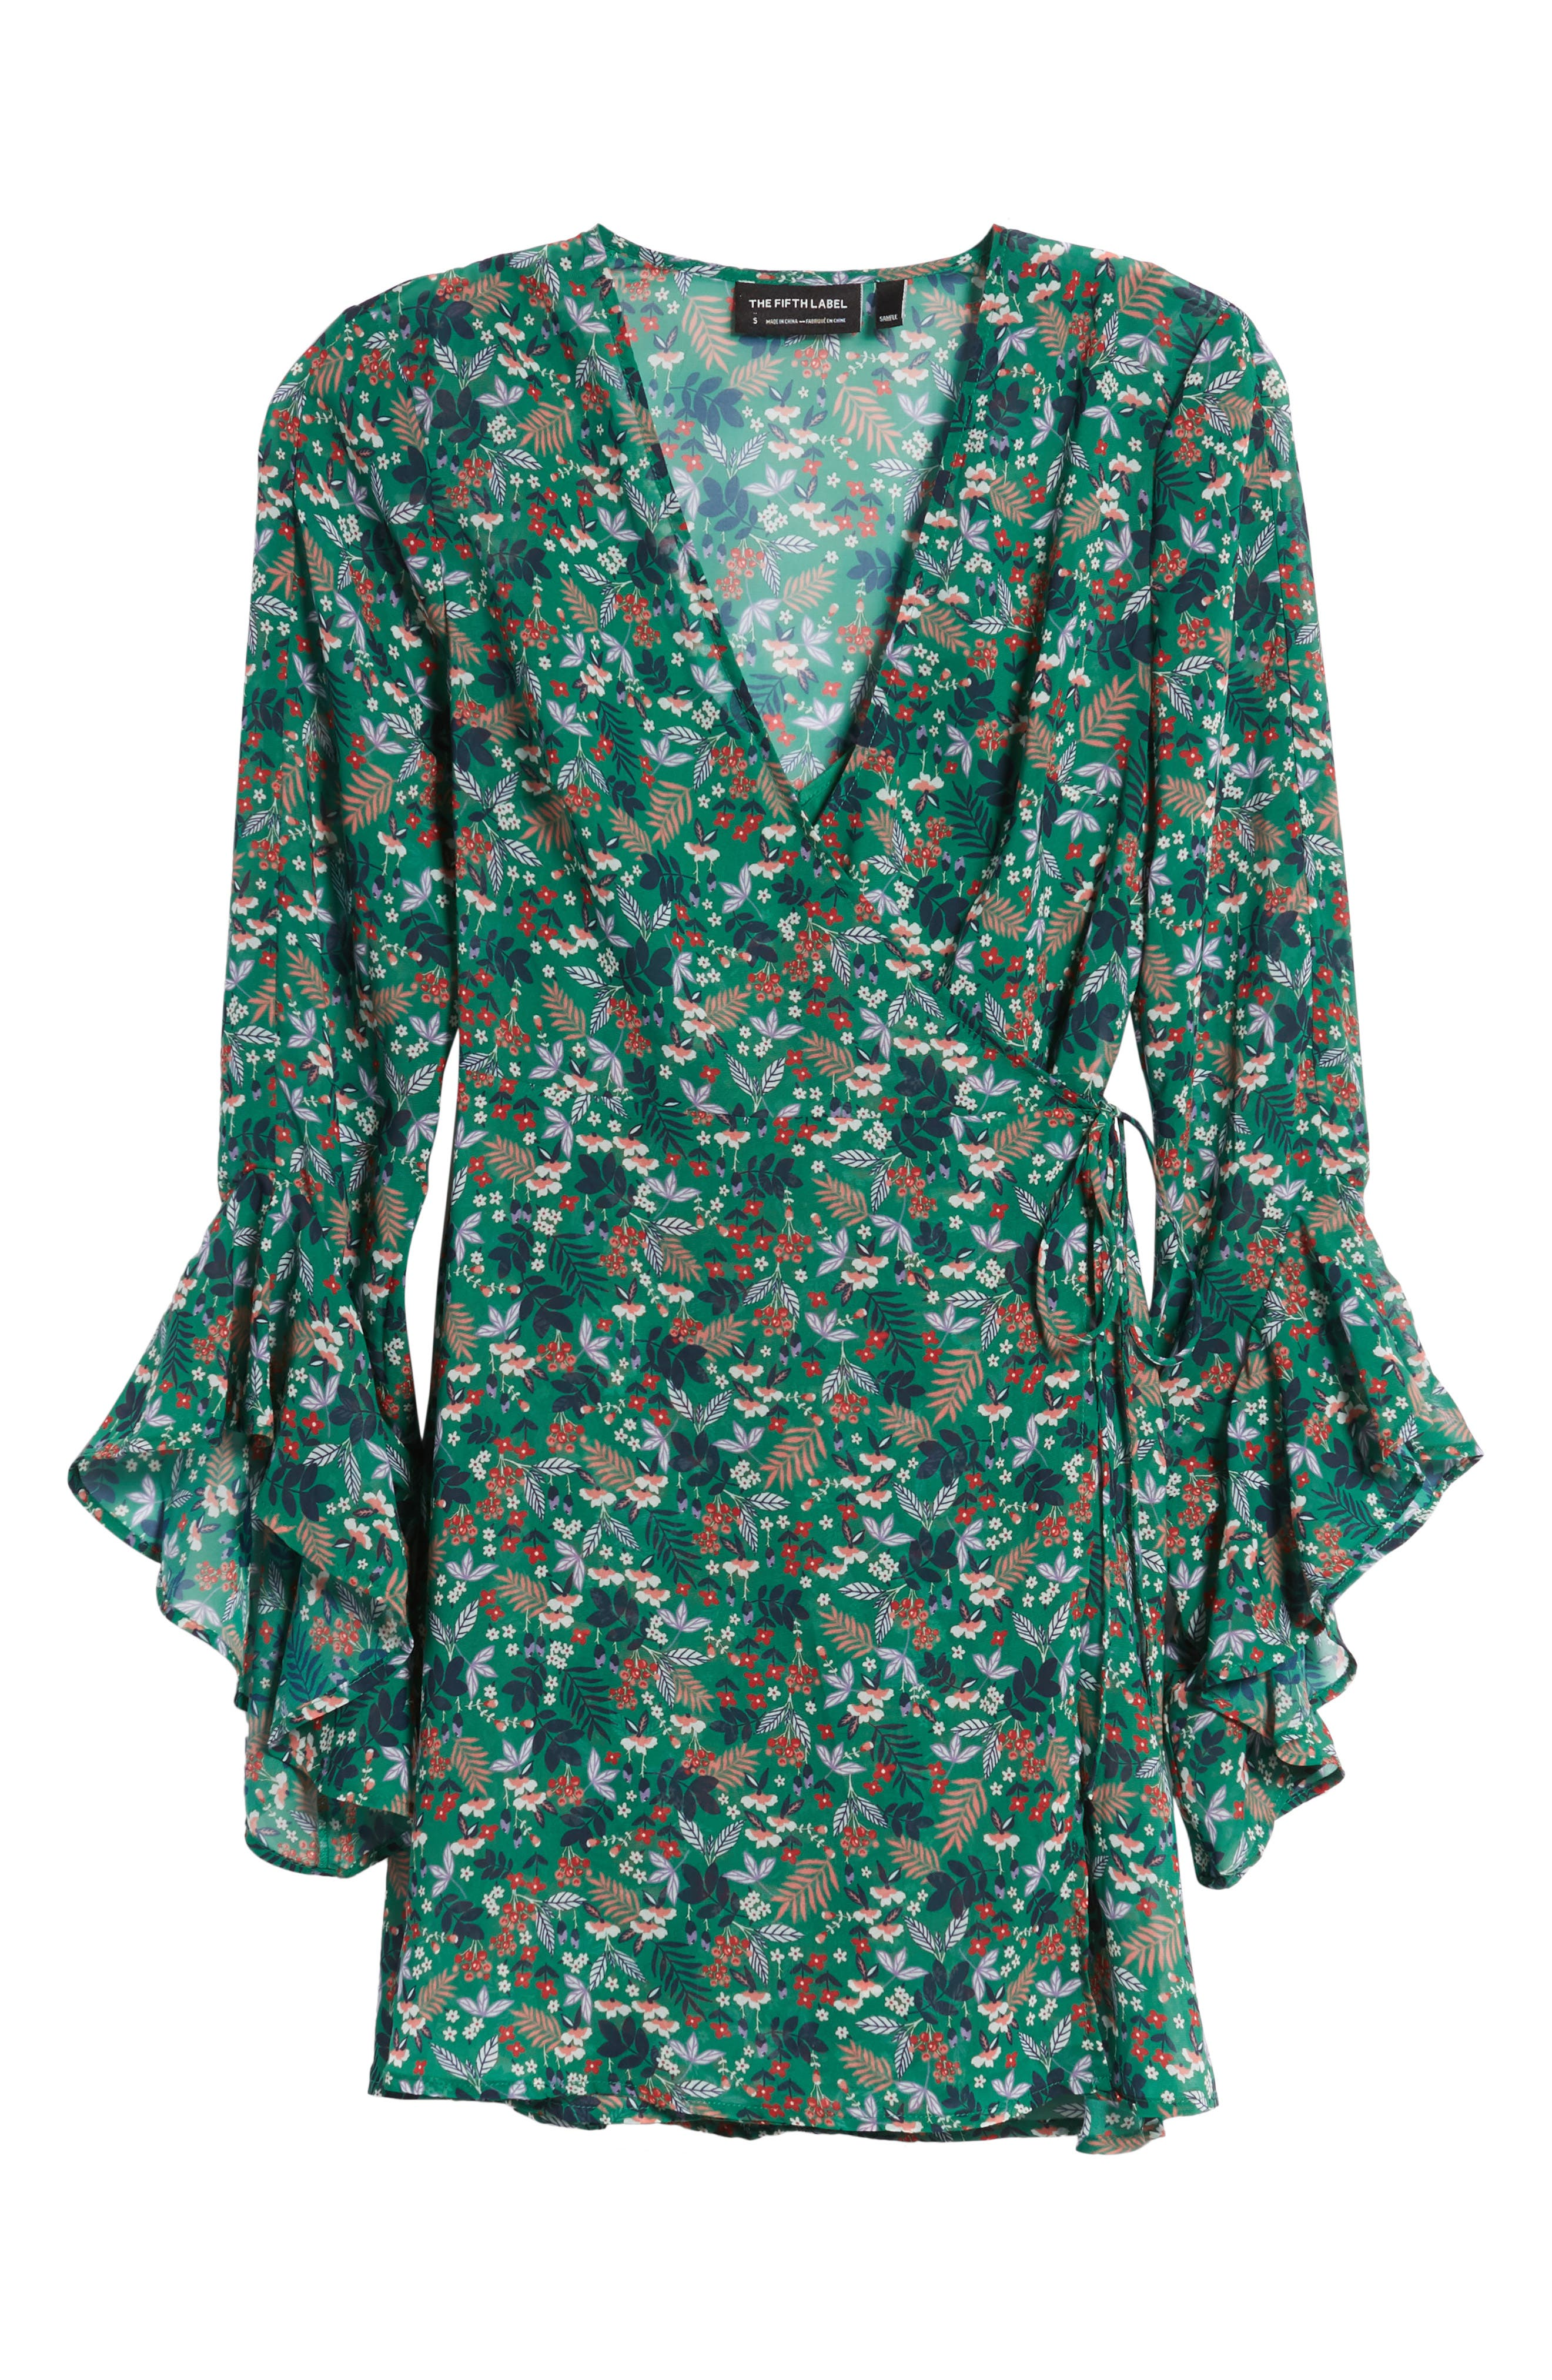 Viridian Floral Wrap Dress,                             Alternate thumbnail 7, color,                             305